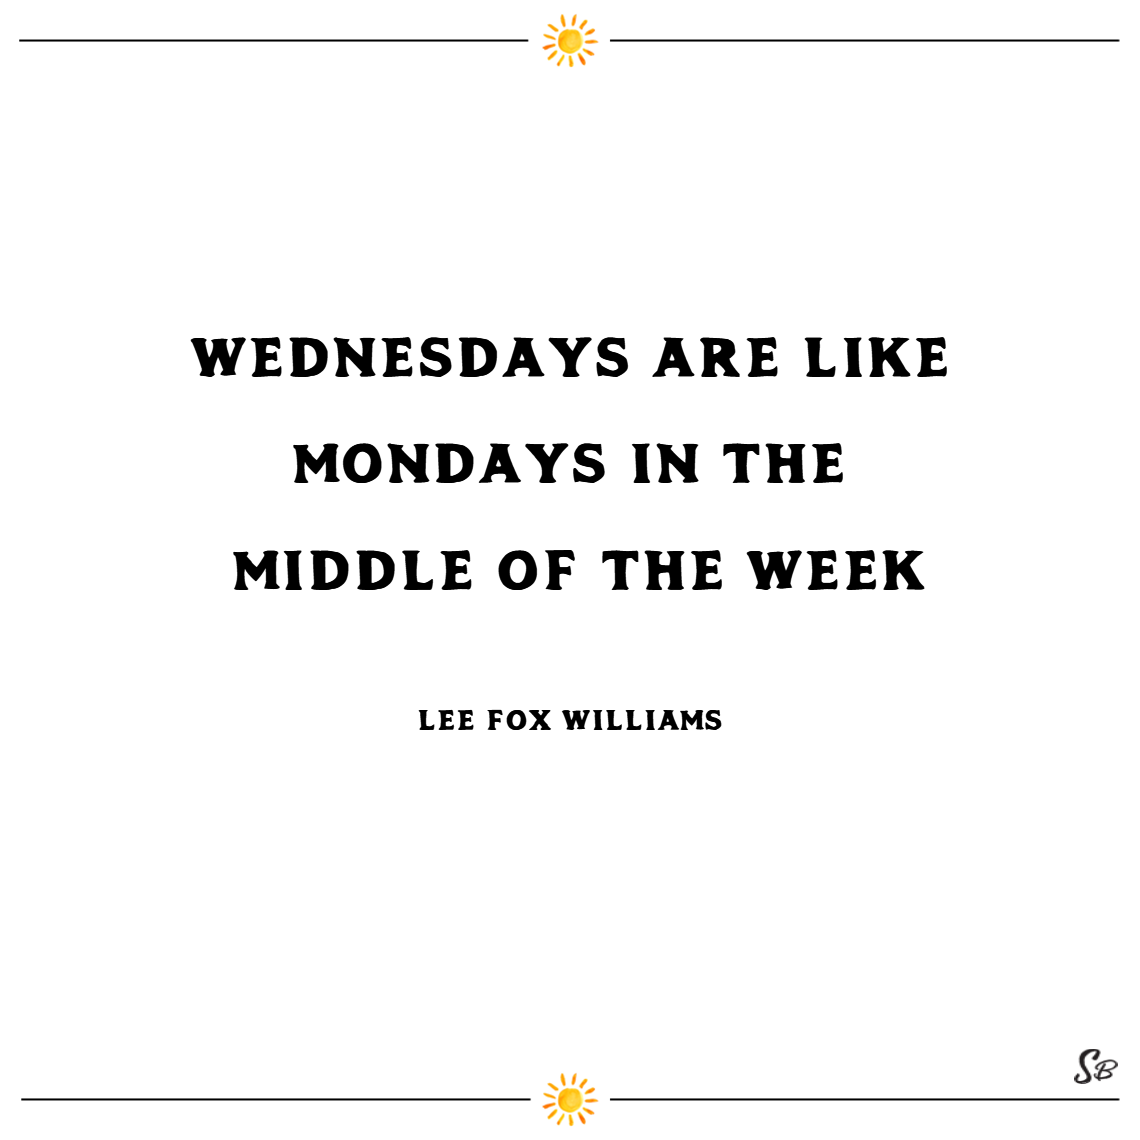 31 Awesome Wednesday Quotes To Push Through The Week | Spirit Button